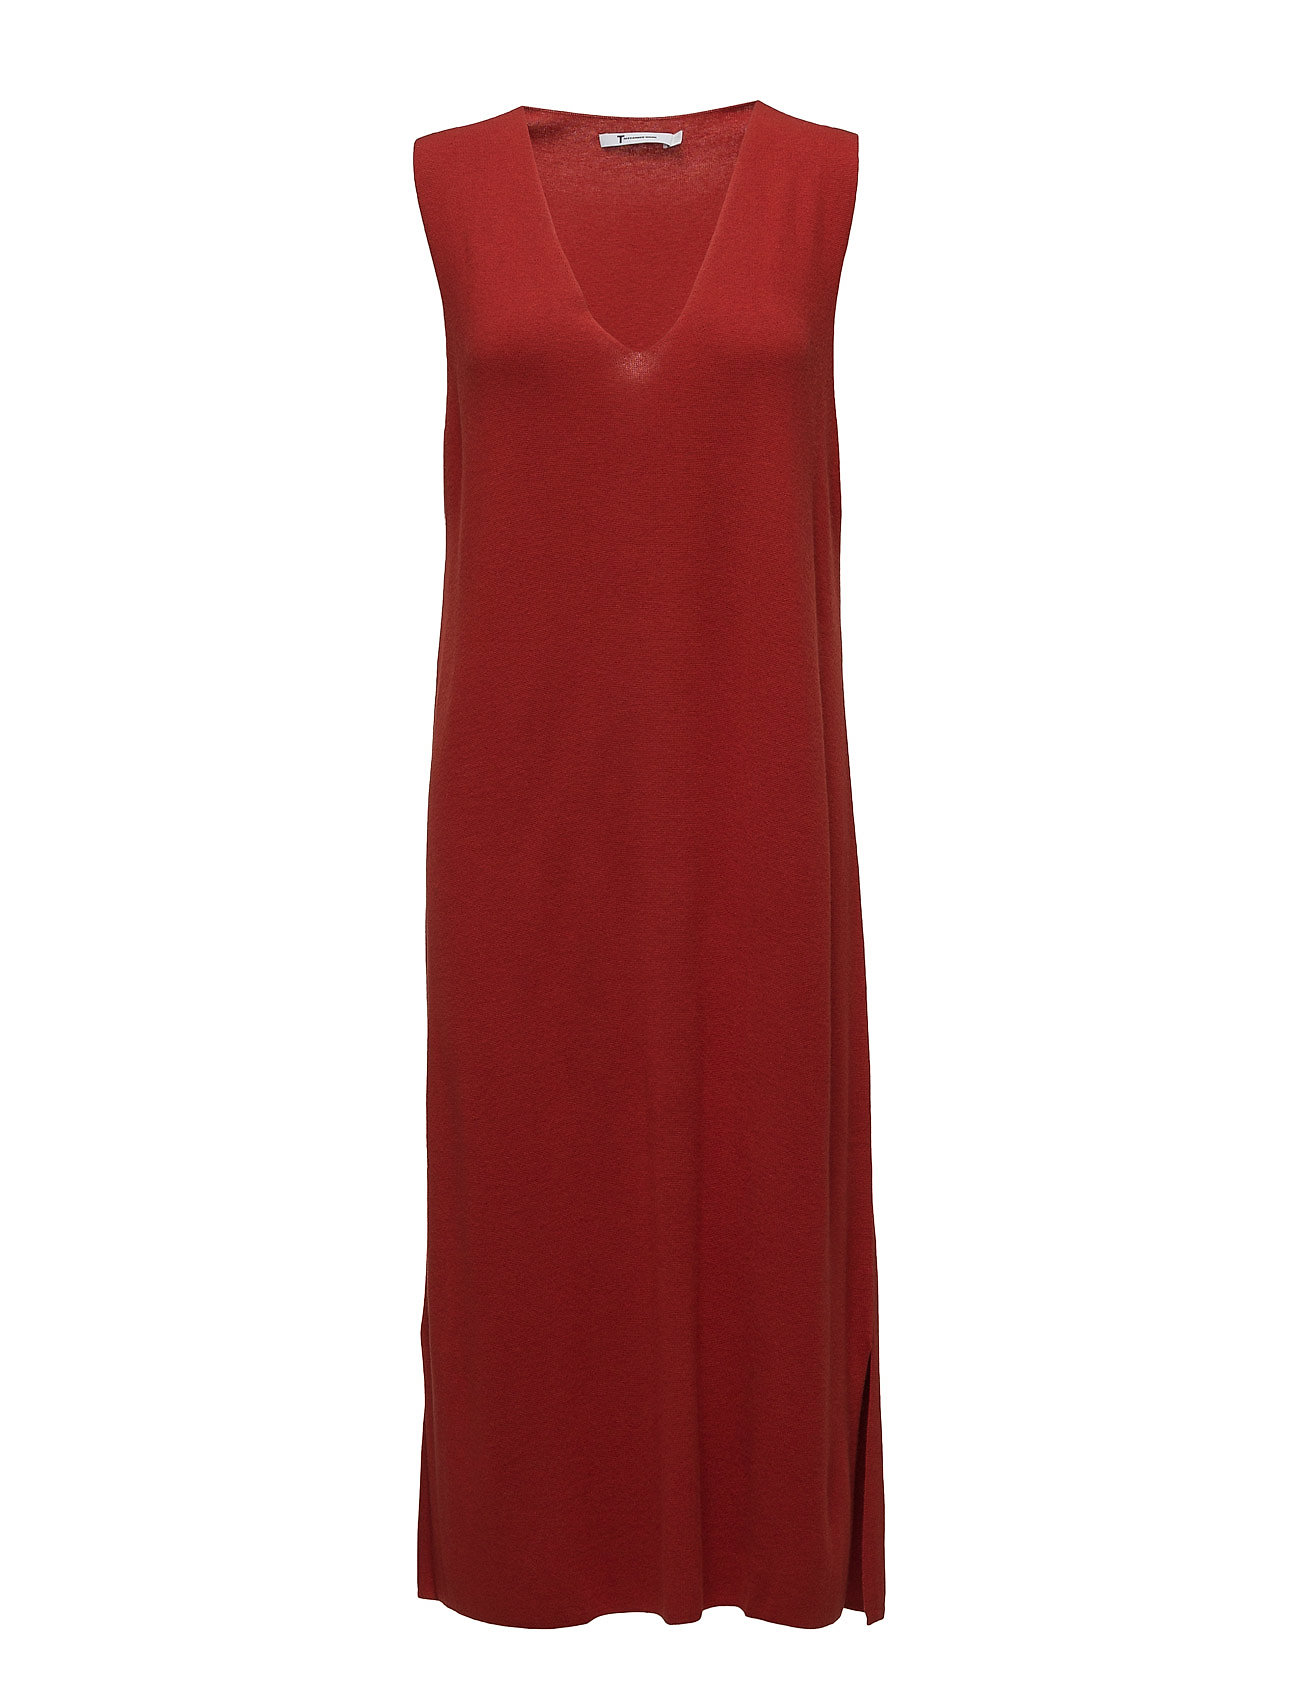 t by alexander wang Viscose blend half milanoslvls v-neck dress fra boozt.com dk